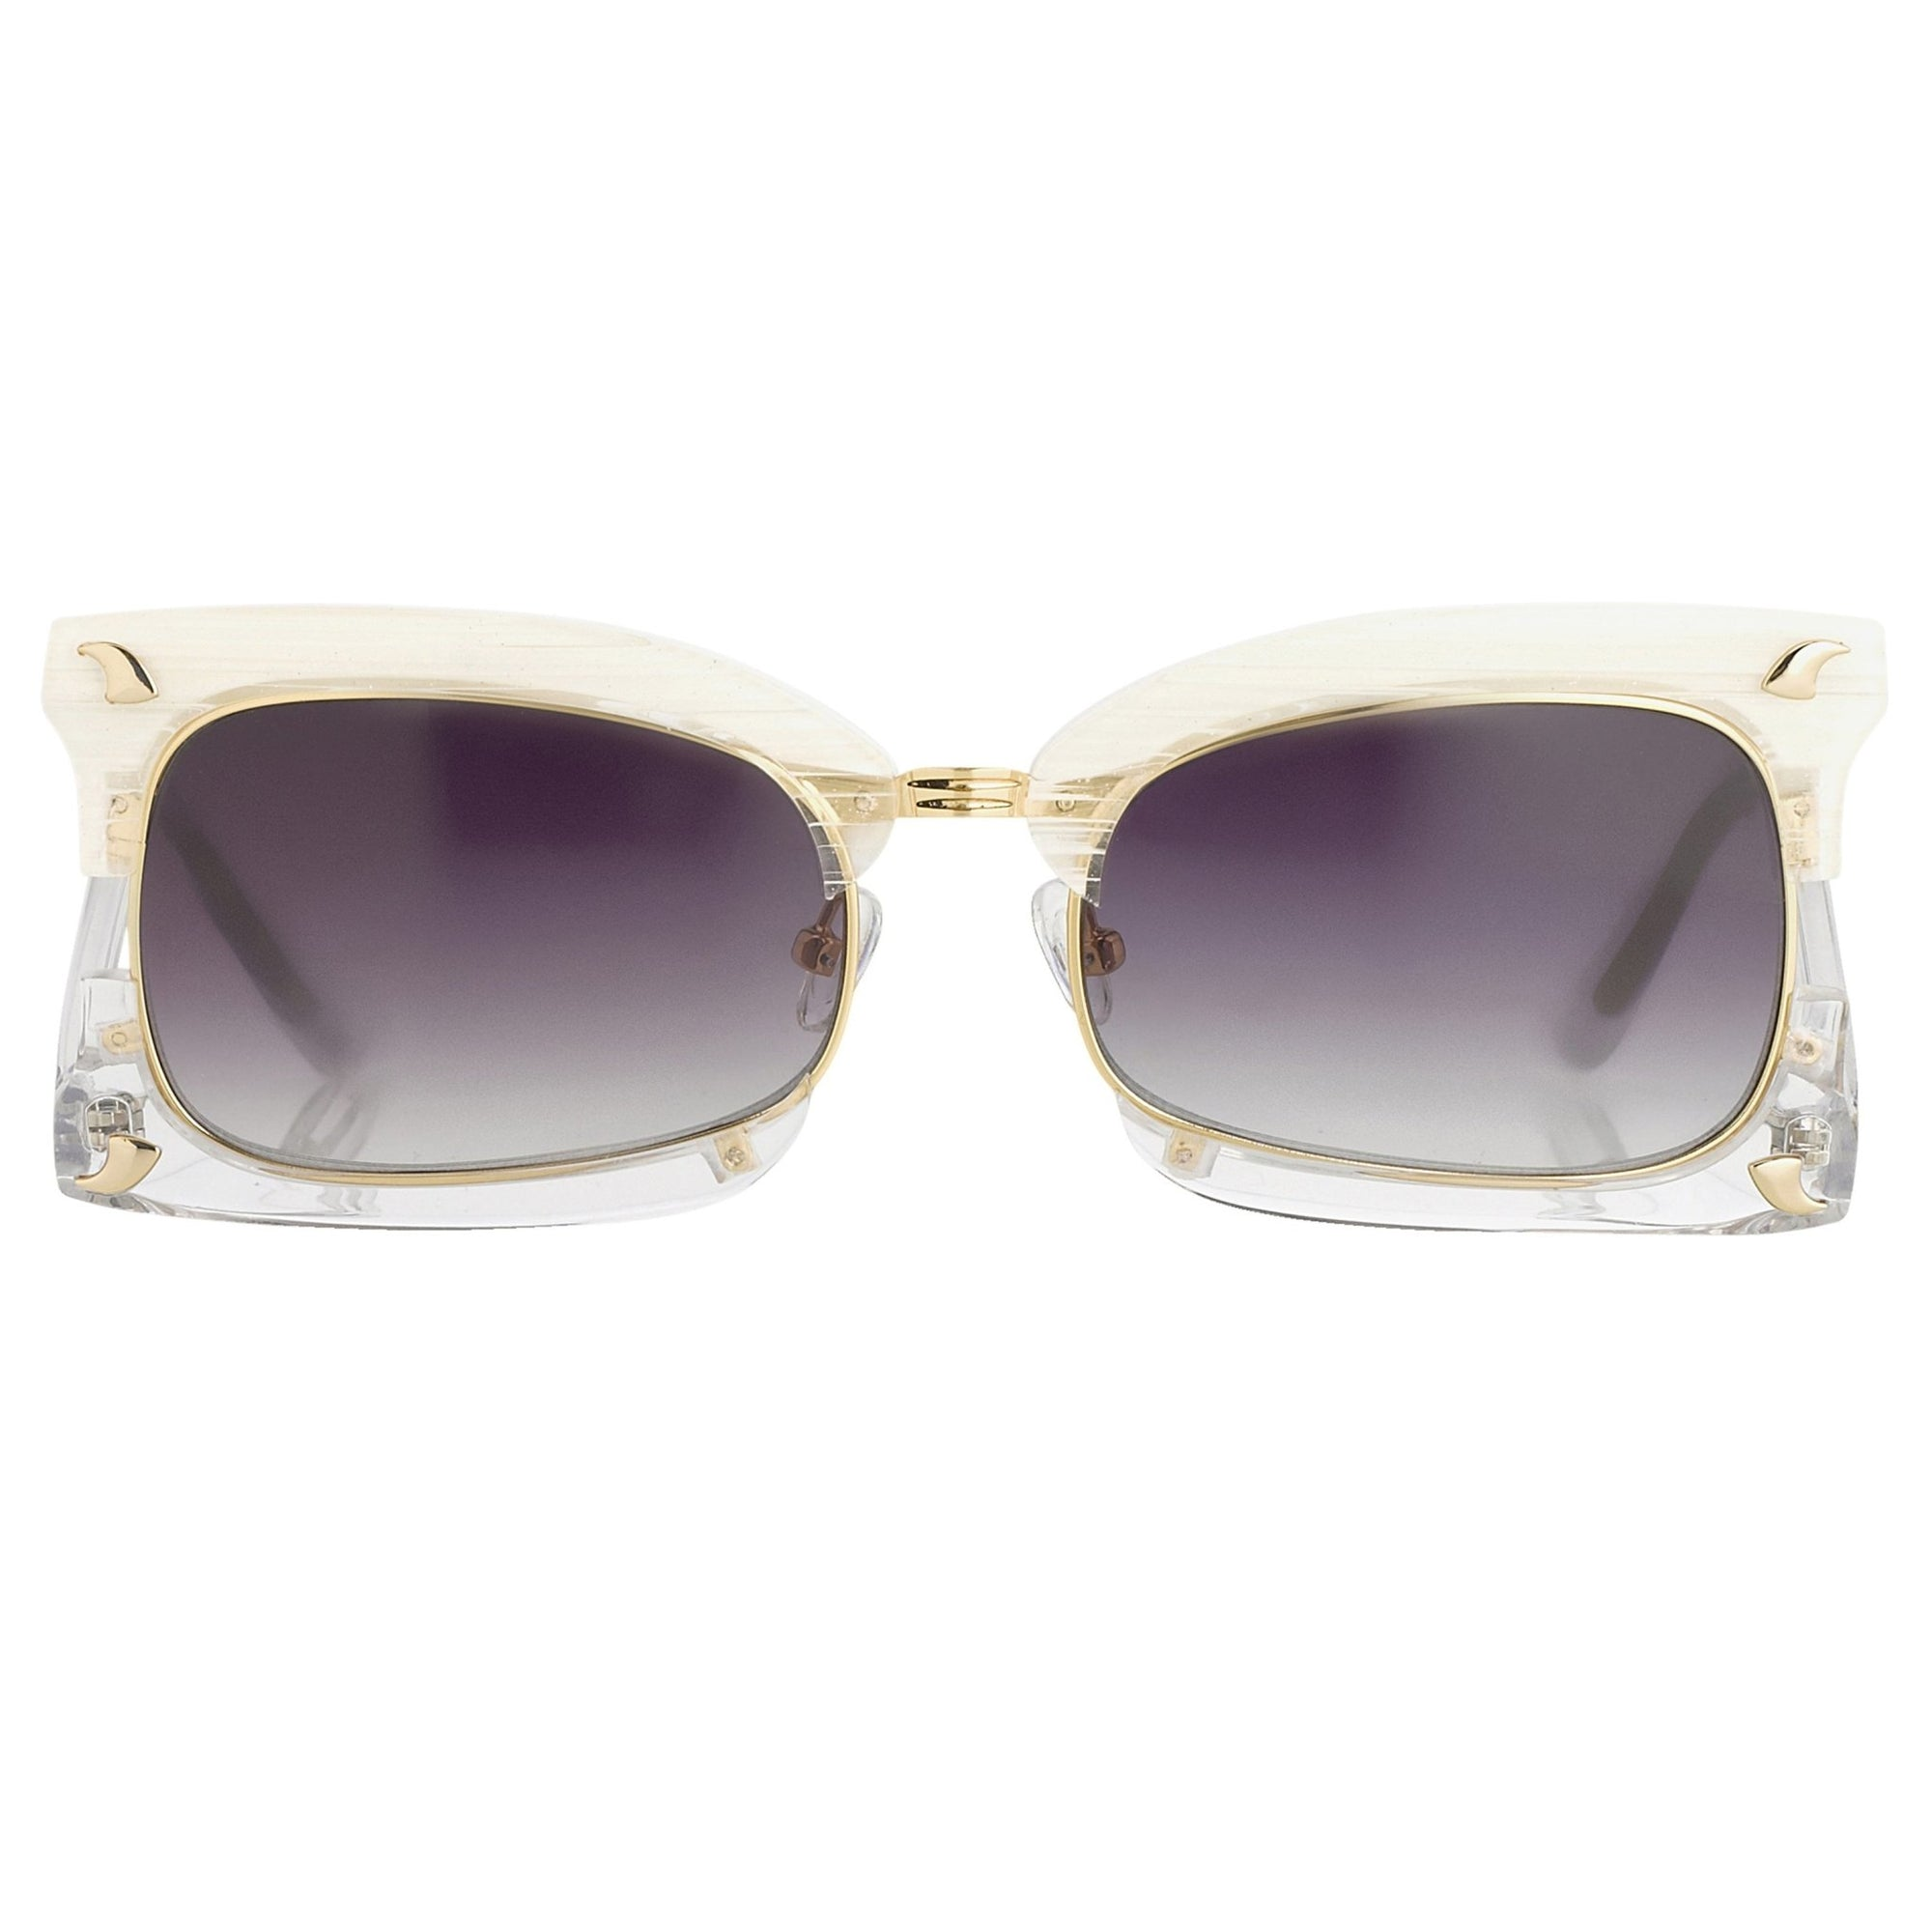 Prabal Gurung Sunglasses Rectangular Textural White With Purple Category 3 Graduated Lenses PG2C2SUN - Watches & Crystals